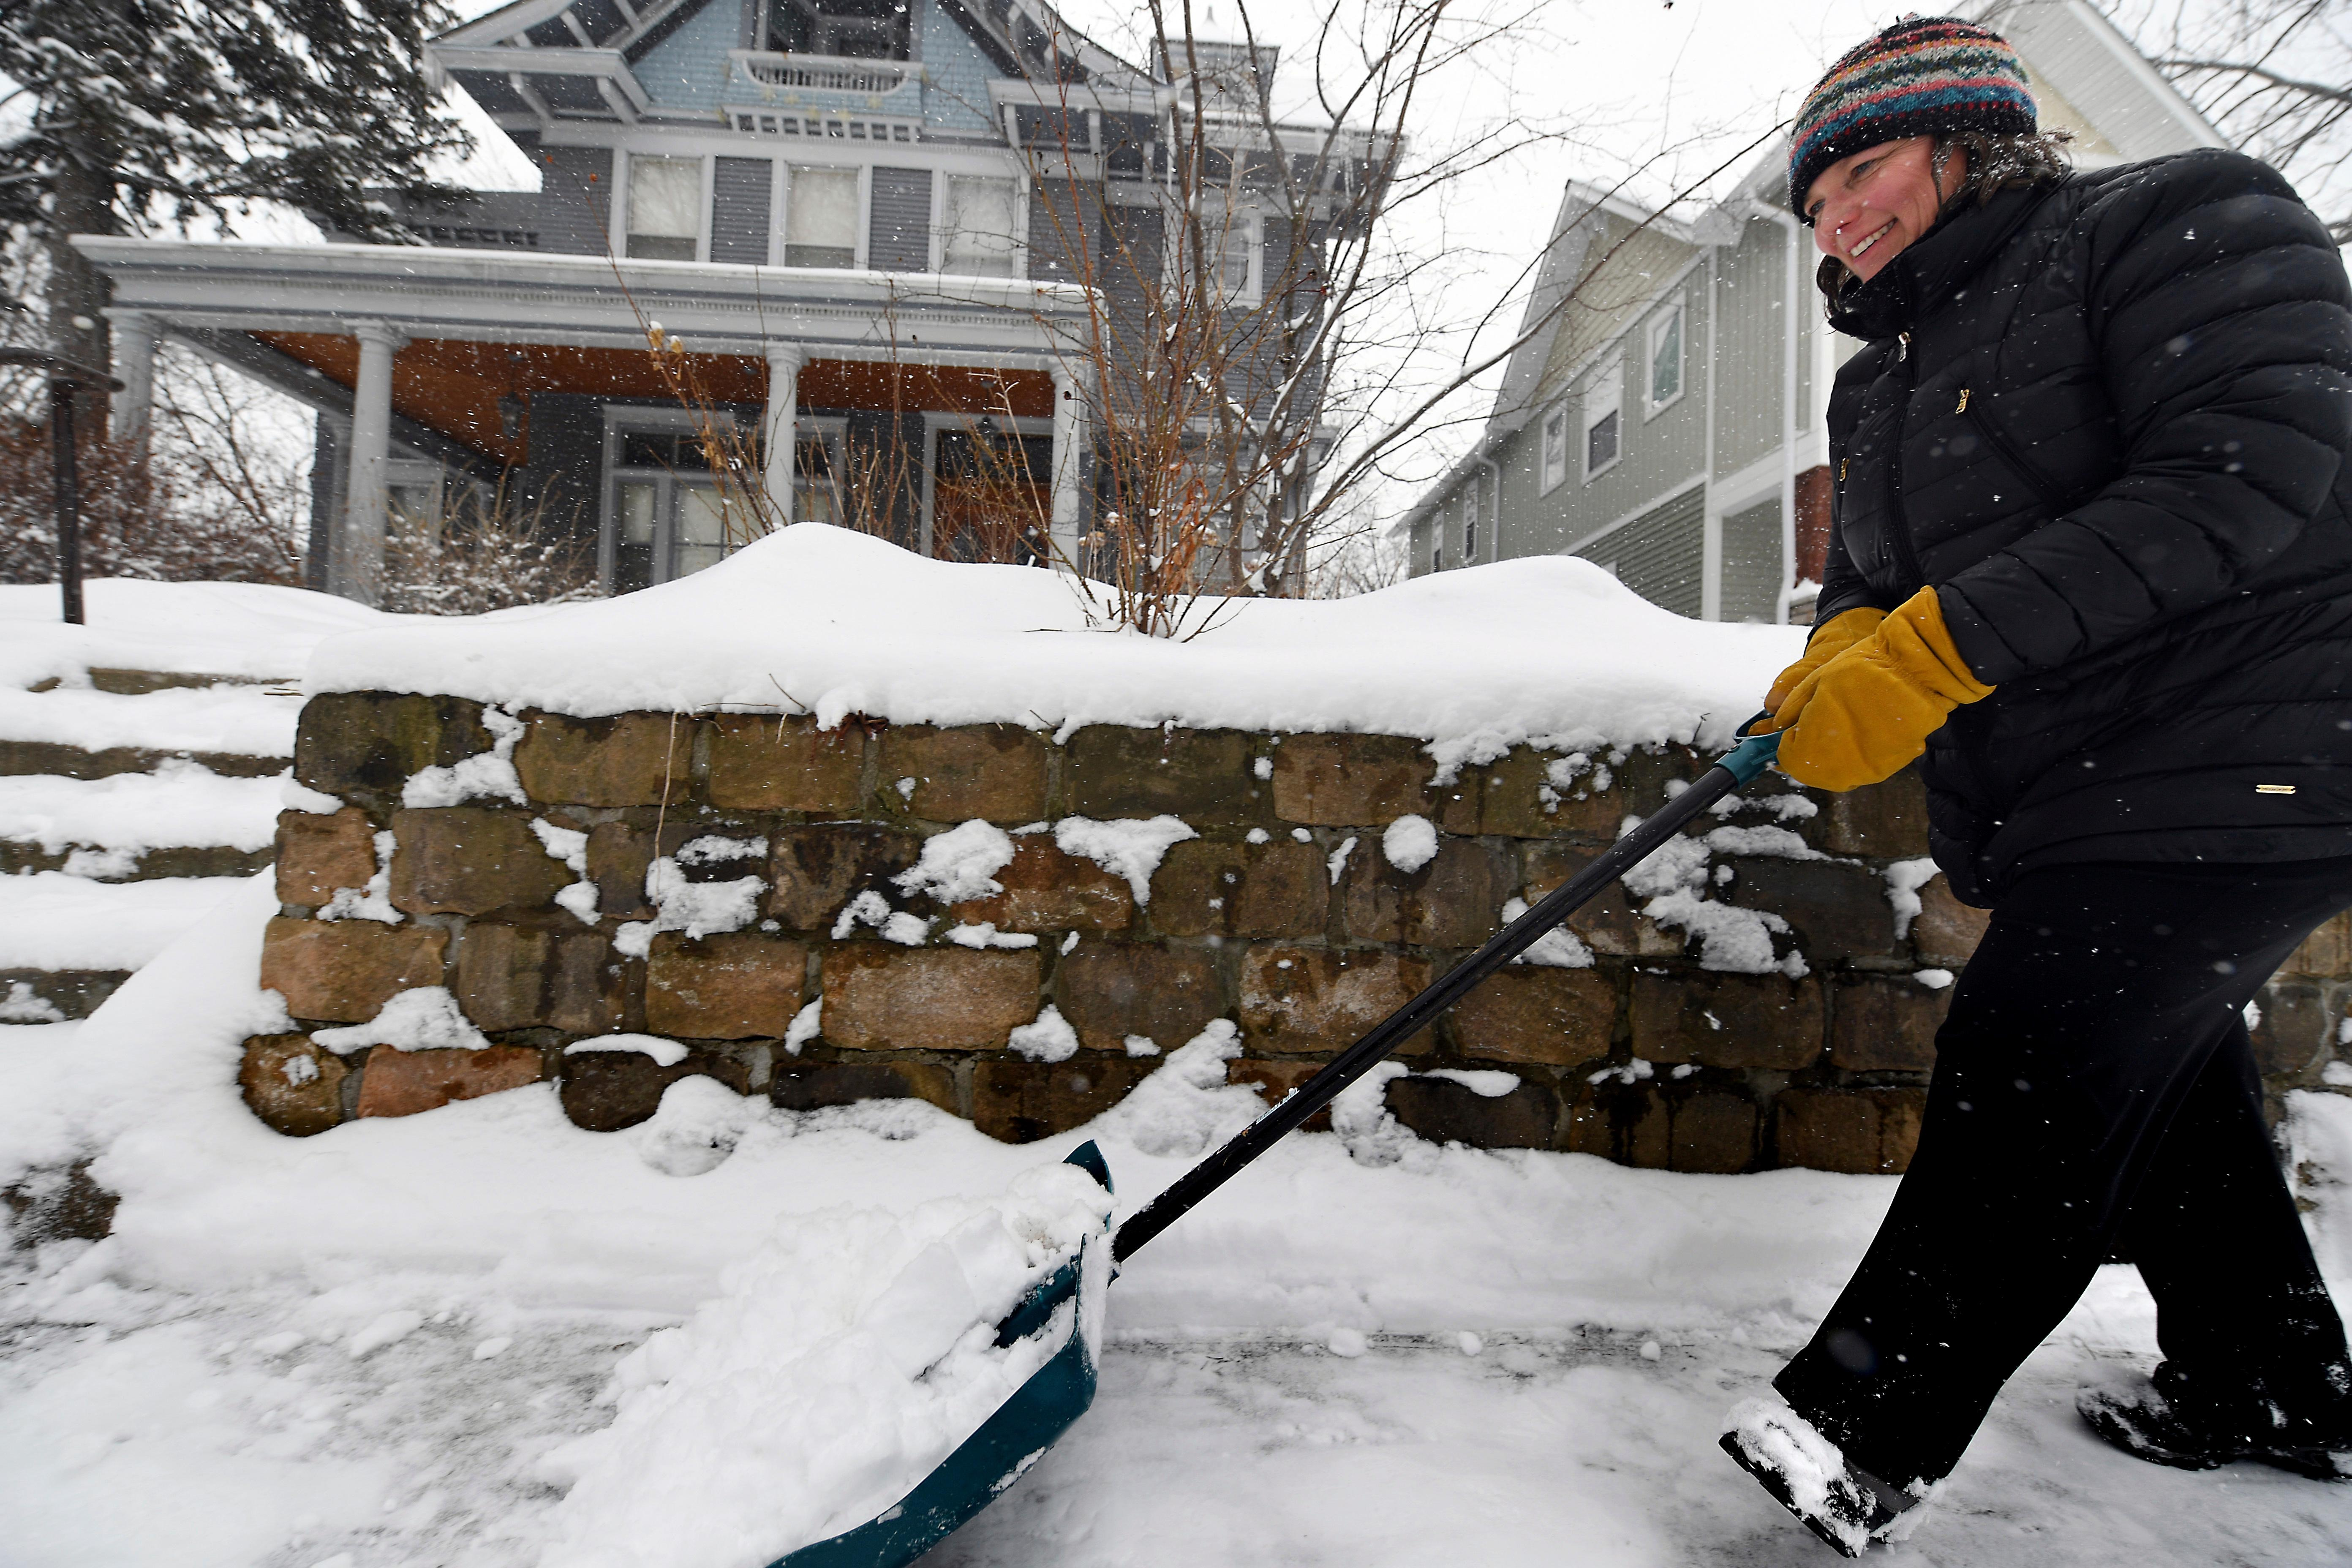 Linda Maher shovels the sidewalk in the Summit-Grand neighborhood of St. Paul, Minn. as a spring snowstorm continued across central Minnesota on Tuesday, April 3, 2018. Maher is a Lakeville school teacher and had the day off because of the storm. (John Autey /Pioneer Press via AP)